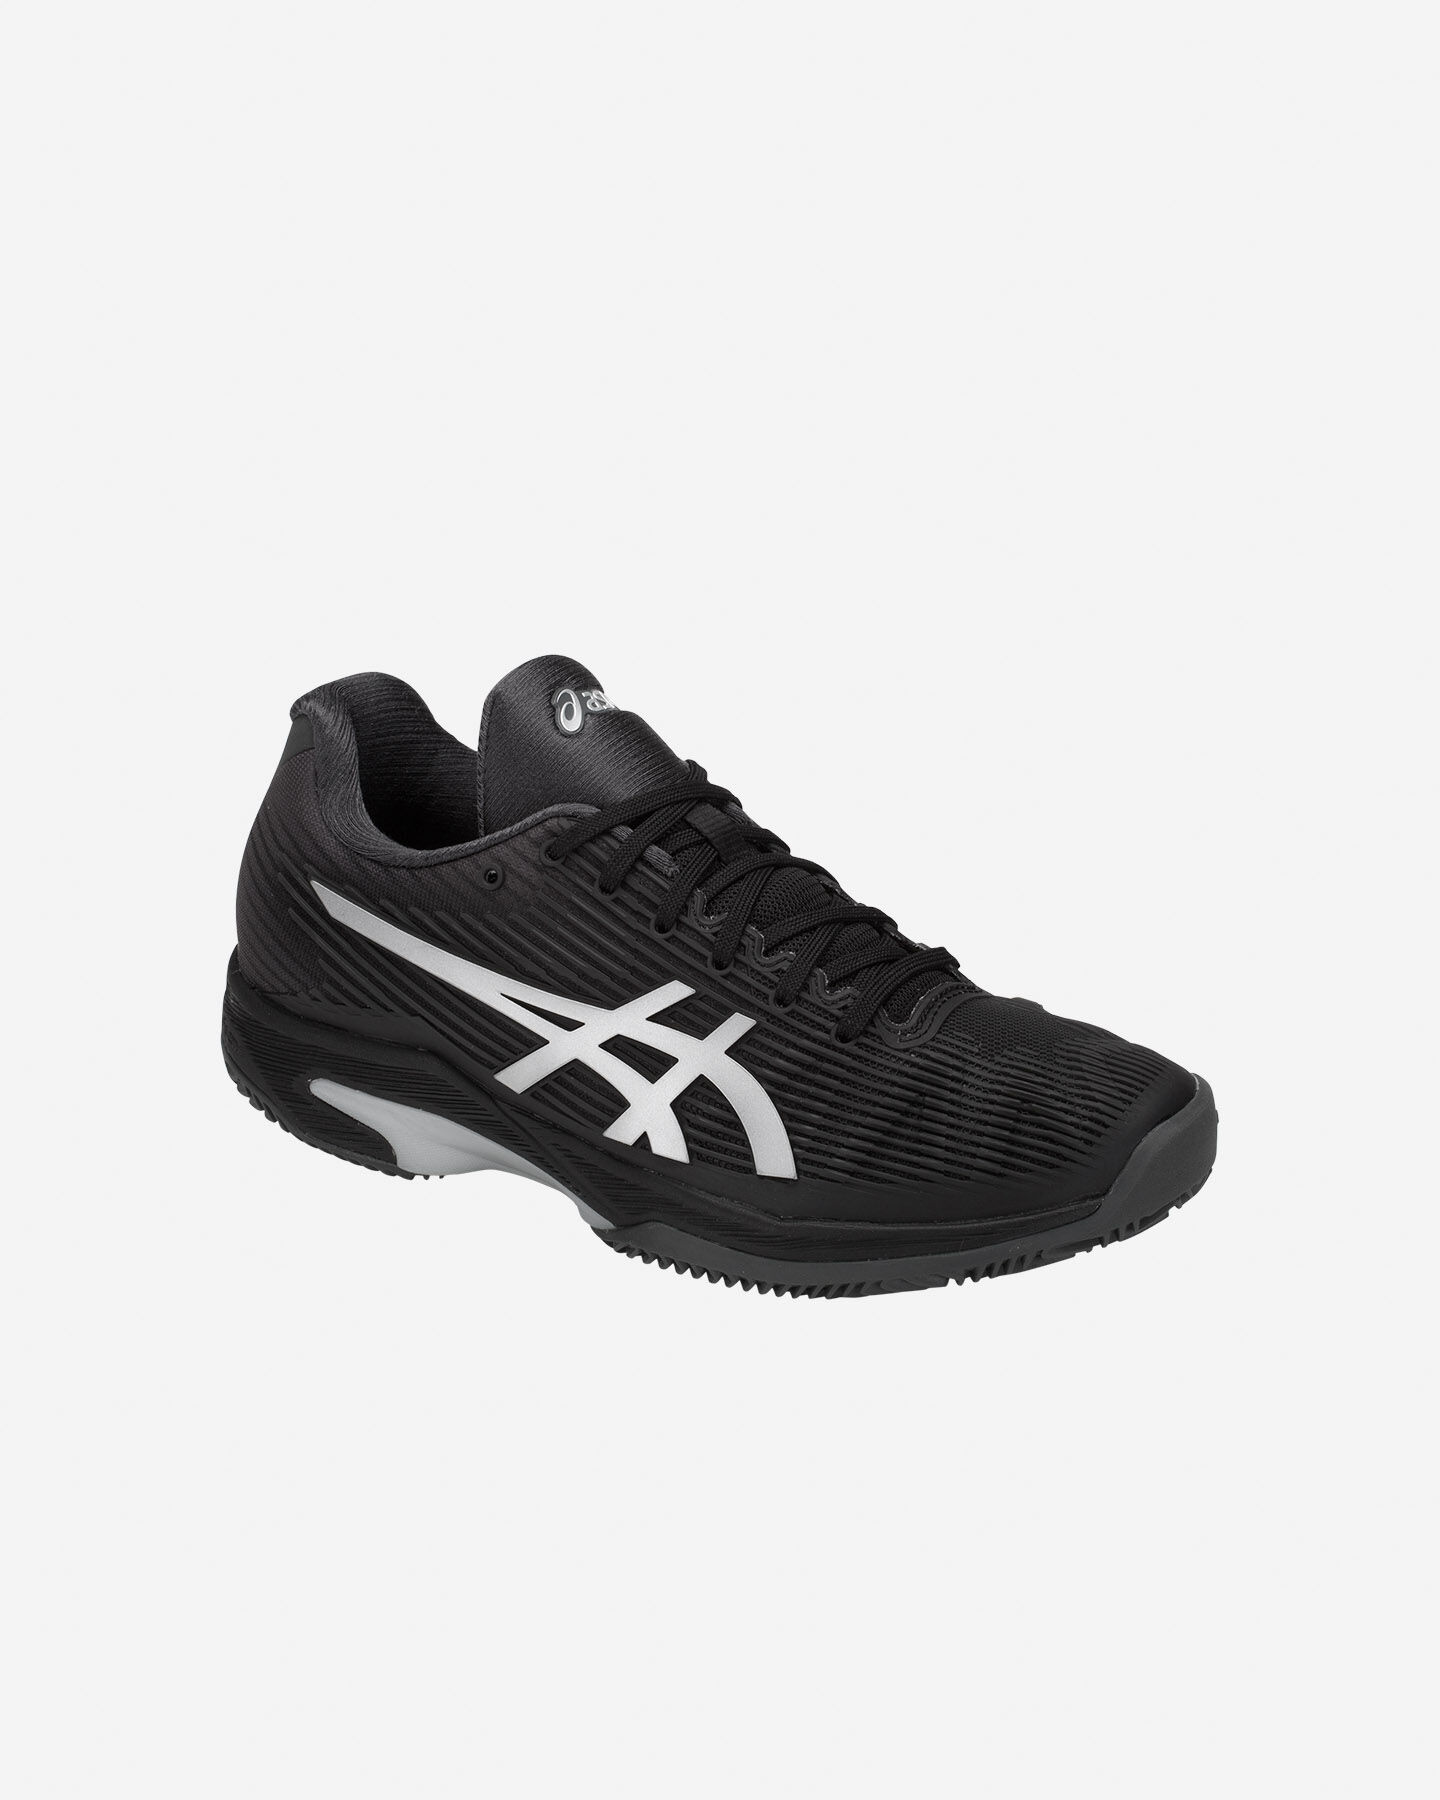 Scarpe tennis ASICS SOLUTION SPEED FF CLAY W S4058702 scatto 1